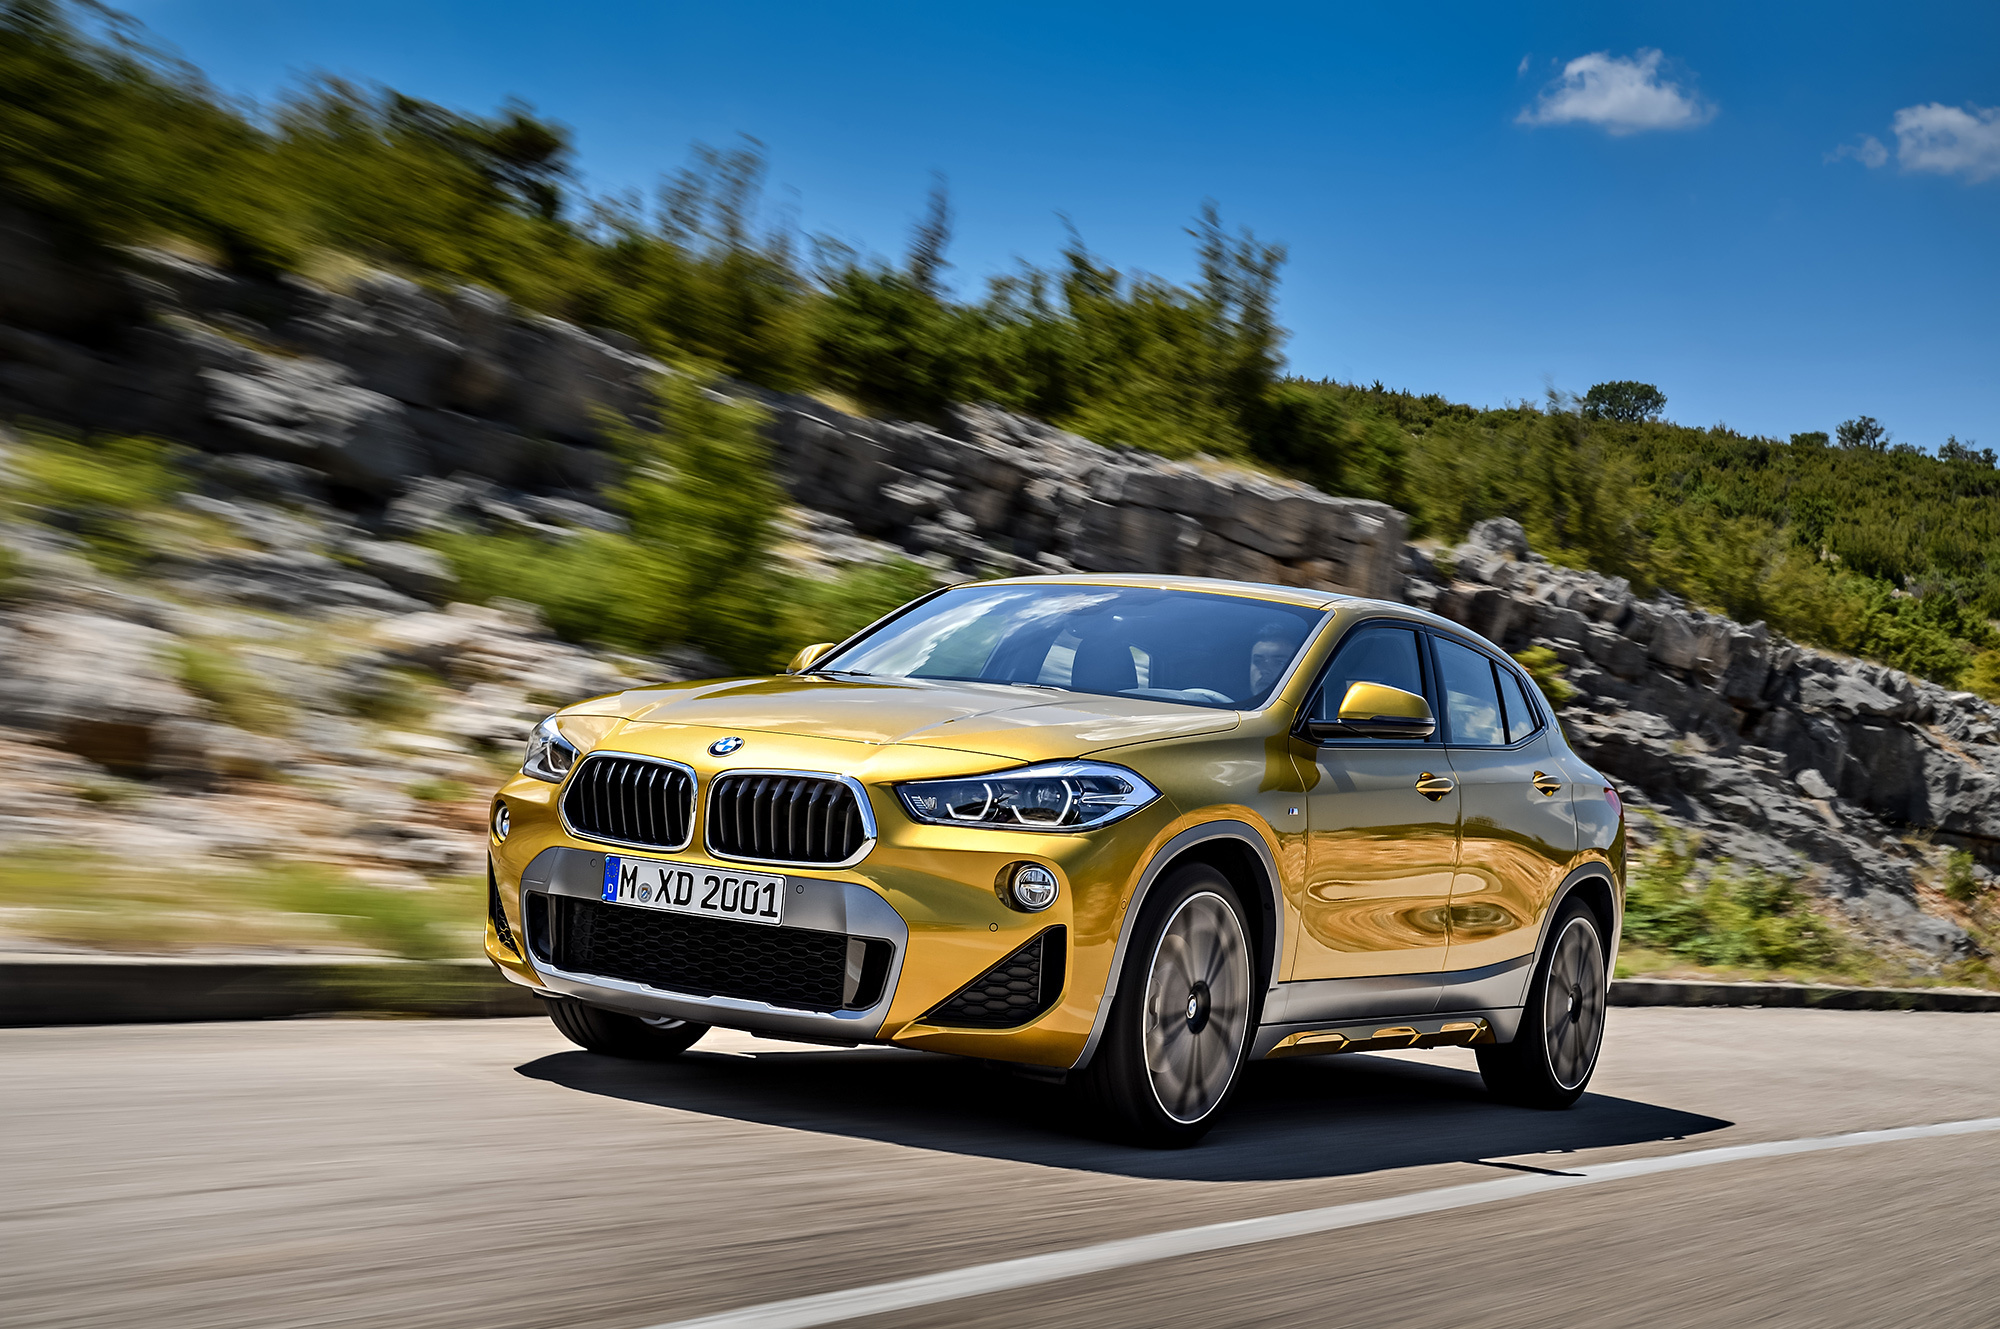 BMW X2 2018 Wallpaper For Computer